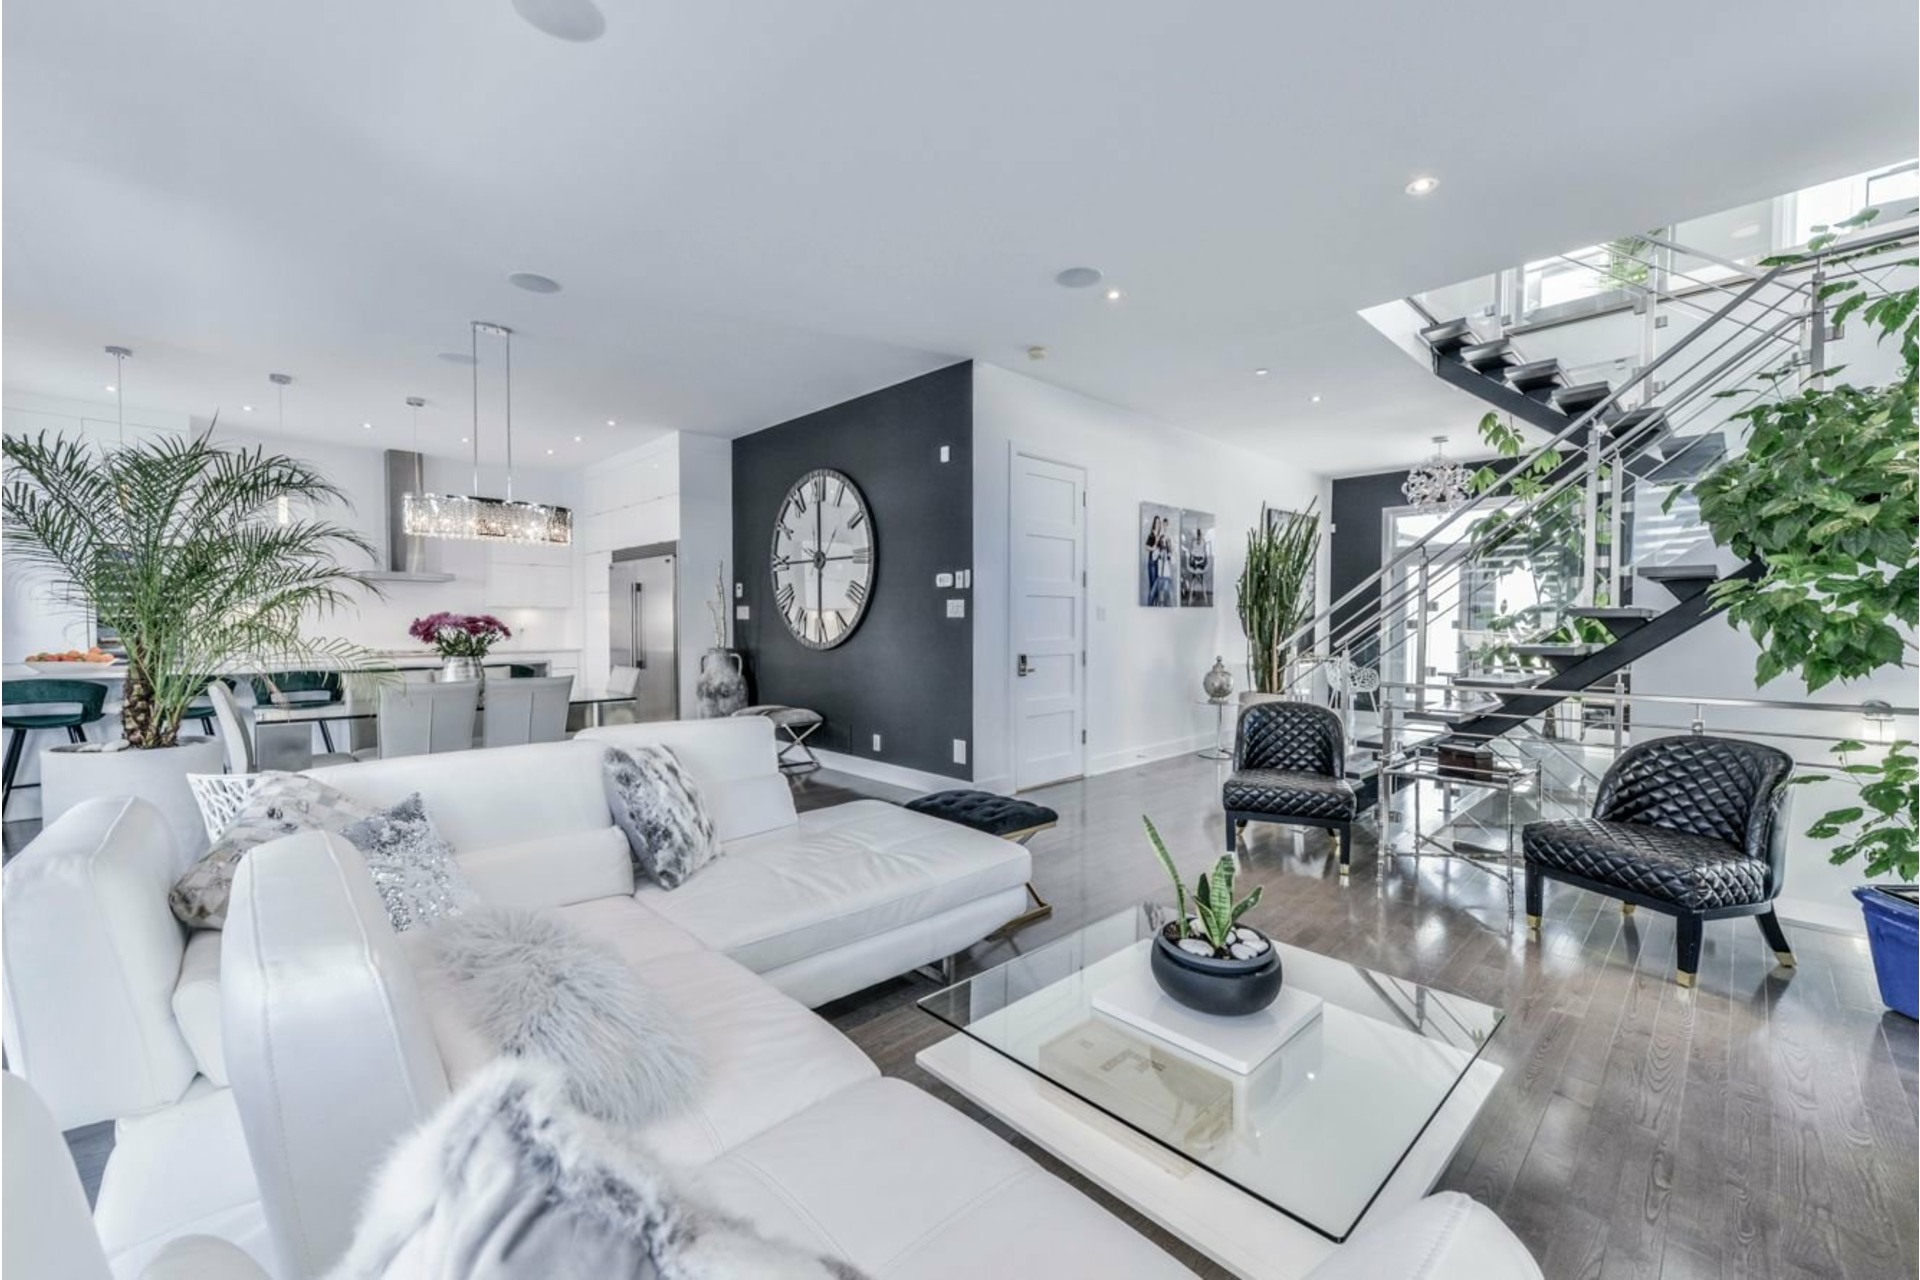 image 5 - House For sale Brossard - 7 rooms